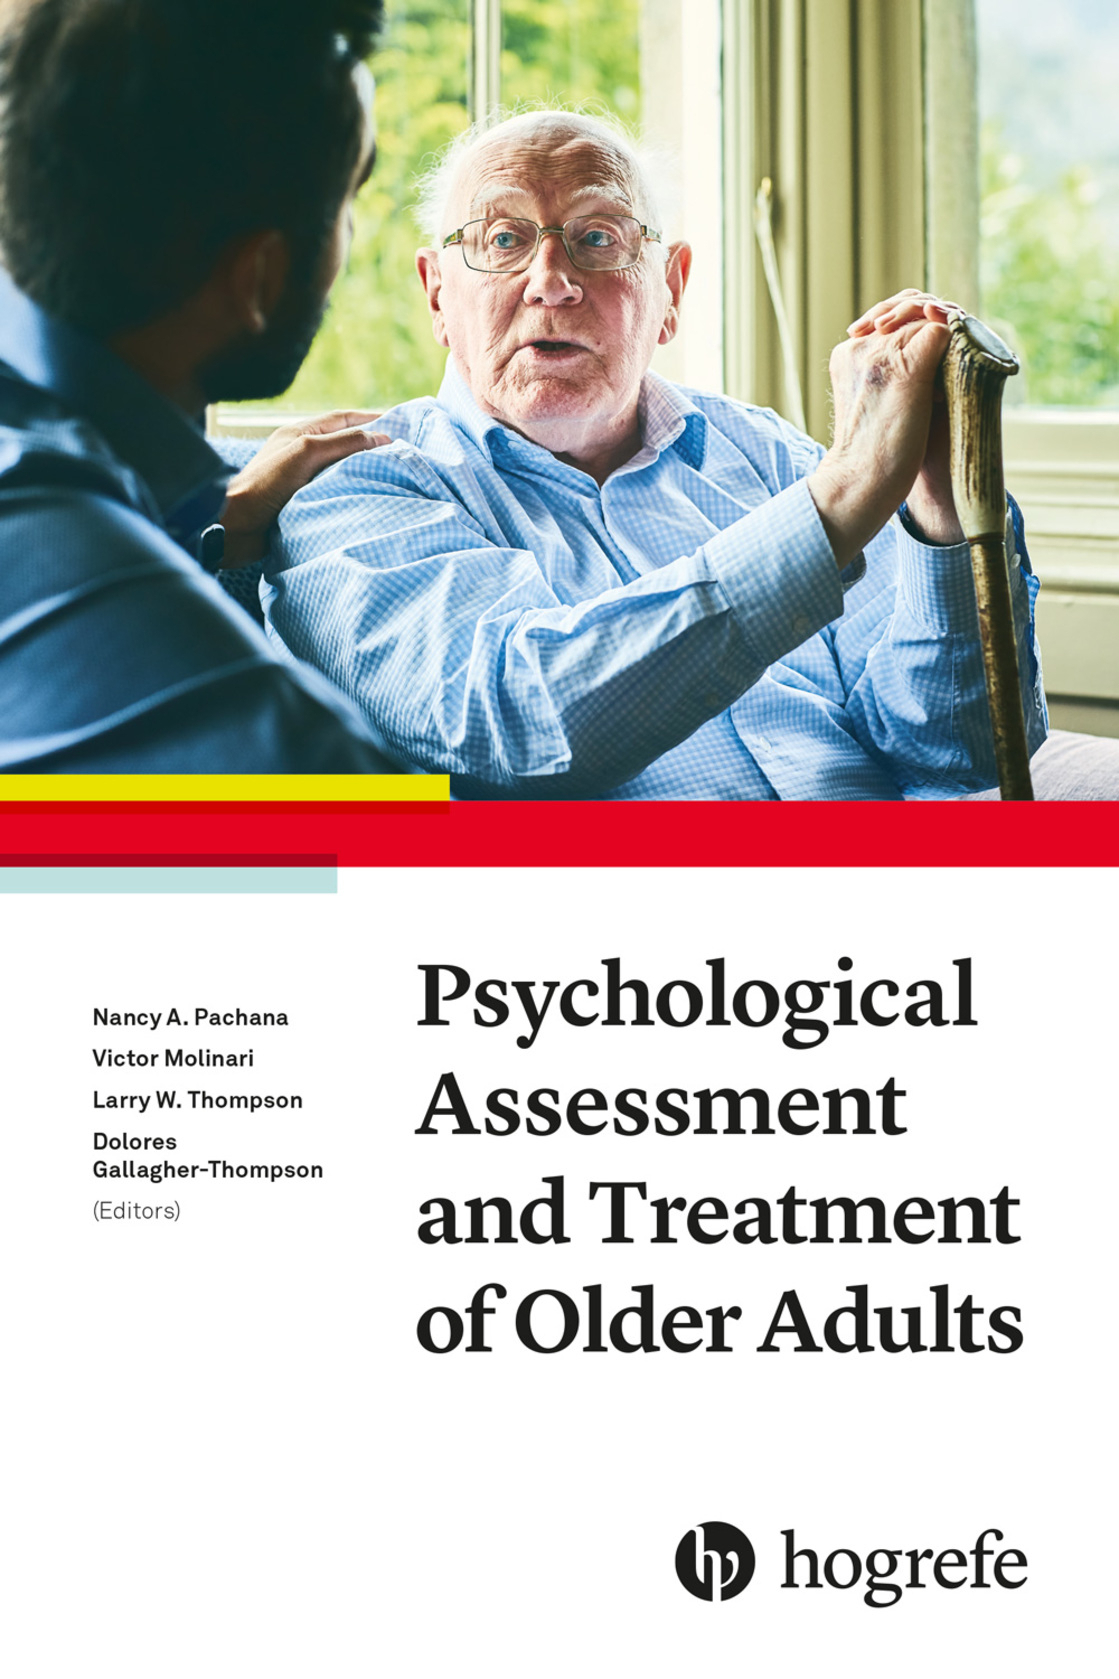 Psychological Assessment and Treatment of Older Adults